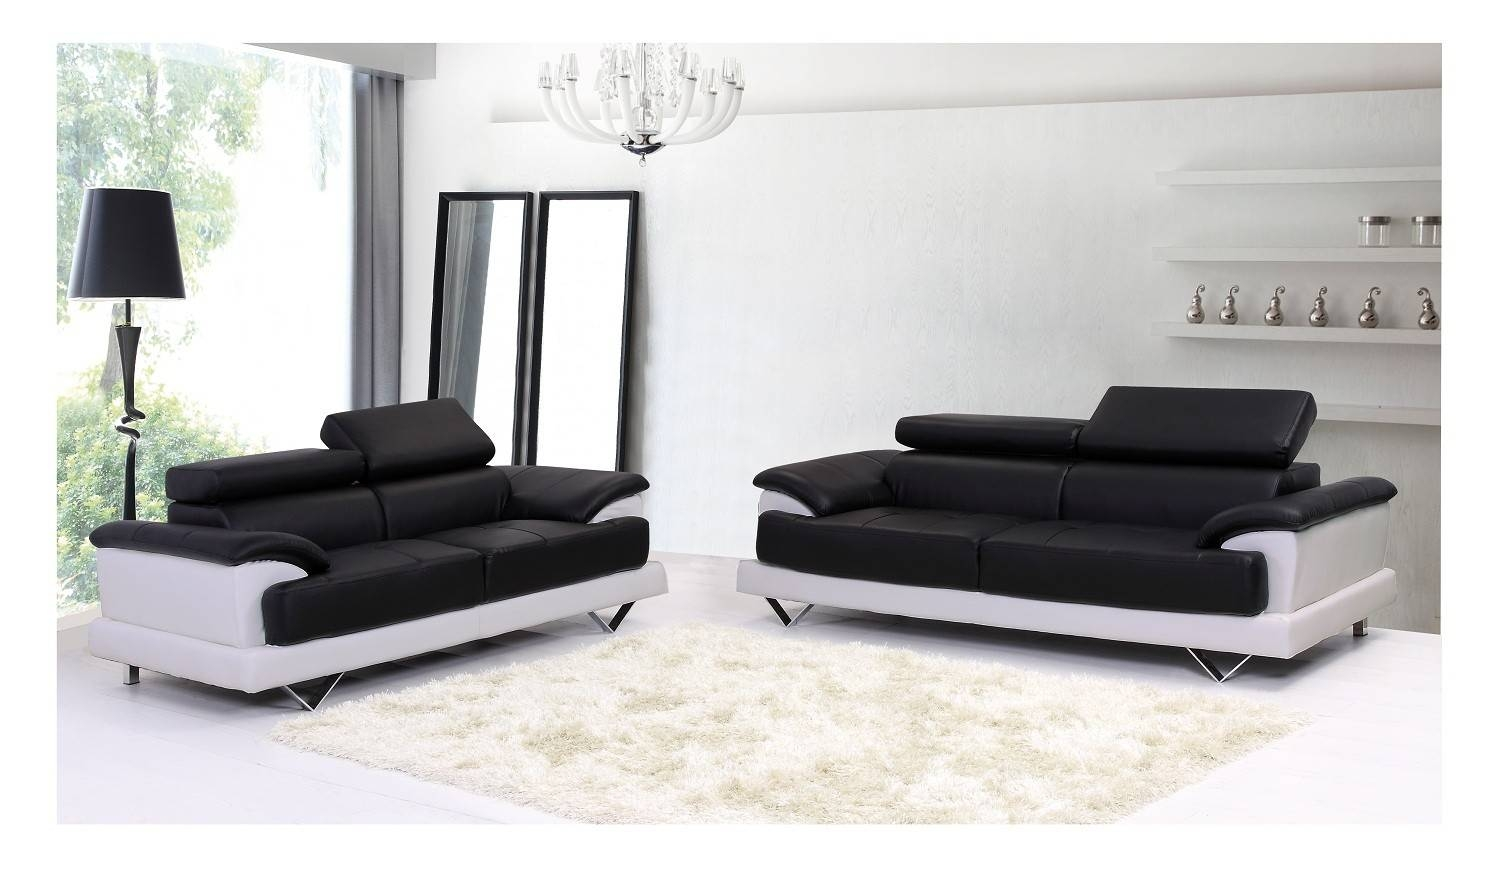 White Leather Sofas For Sale : White Leather Sofa For The with Leather Sofas (Image 29 of 30)